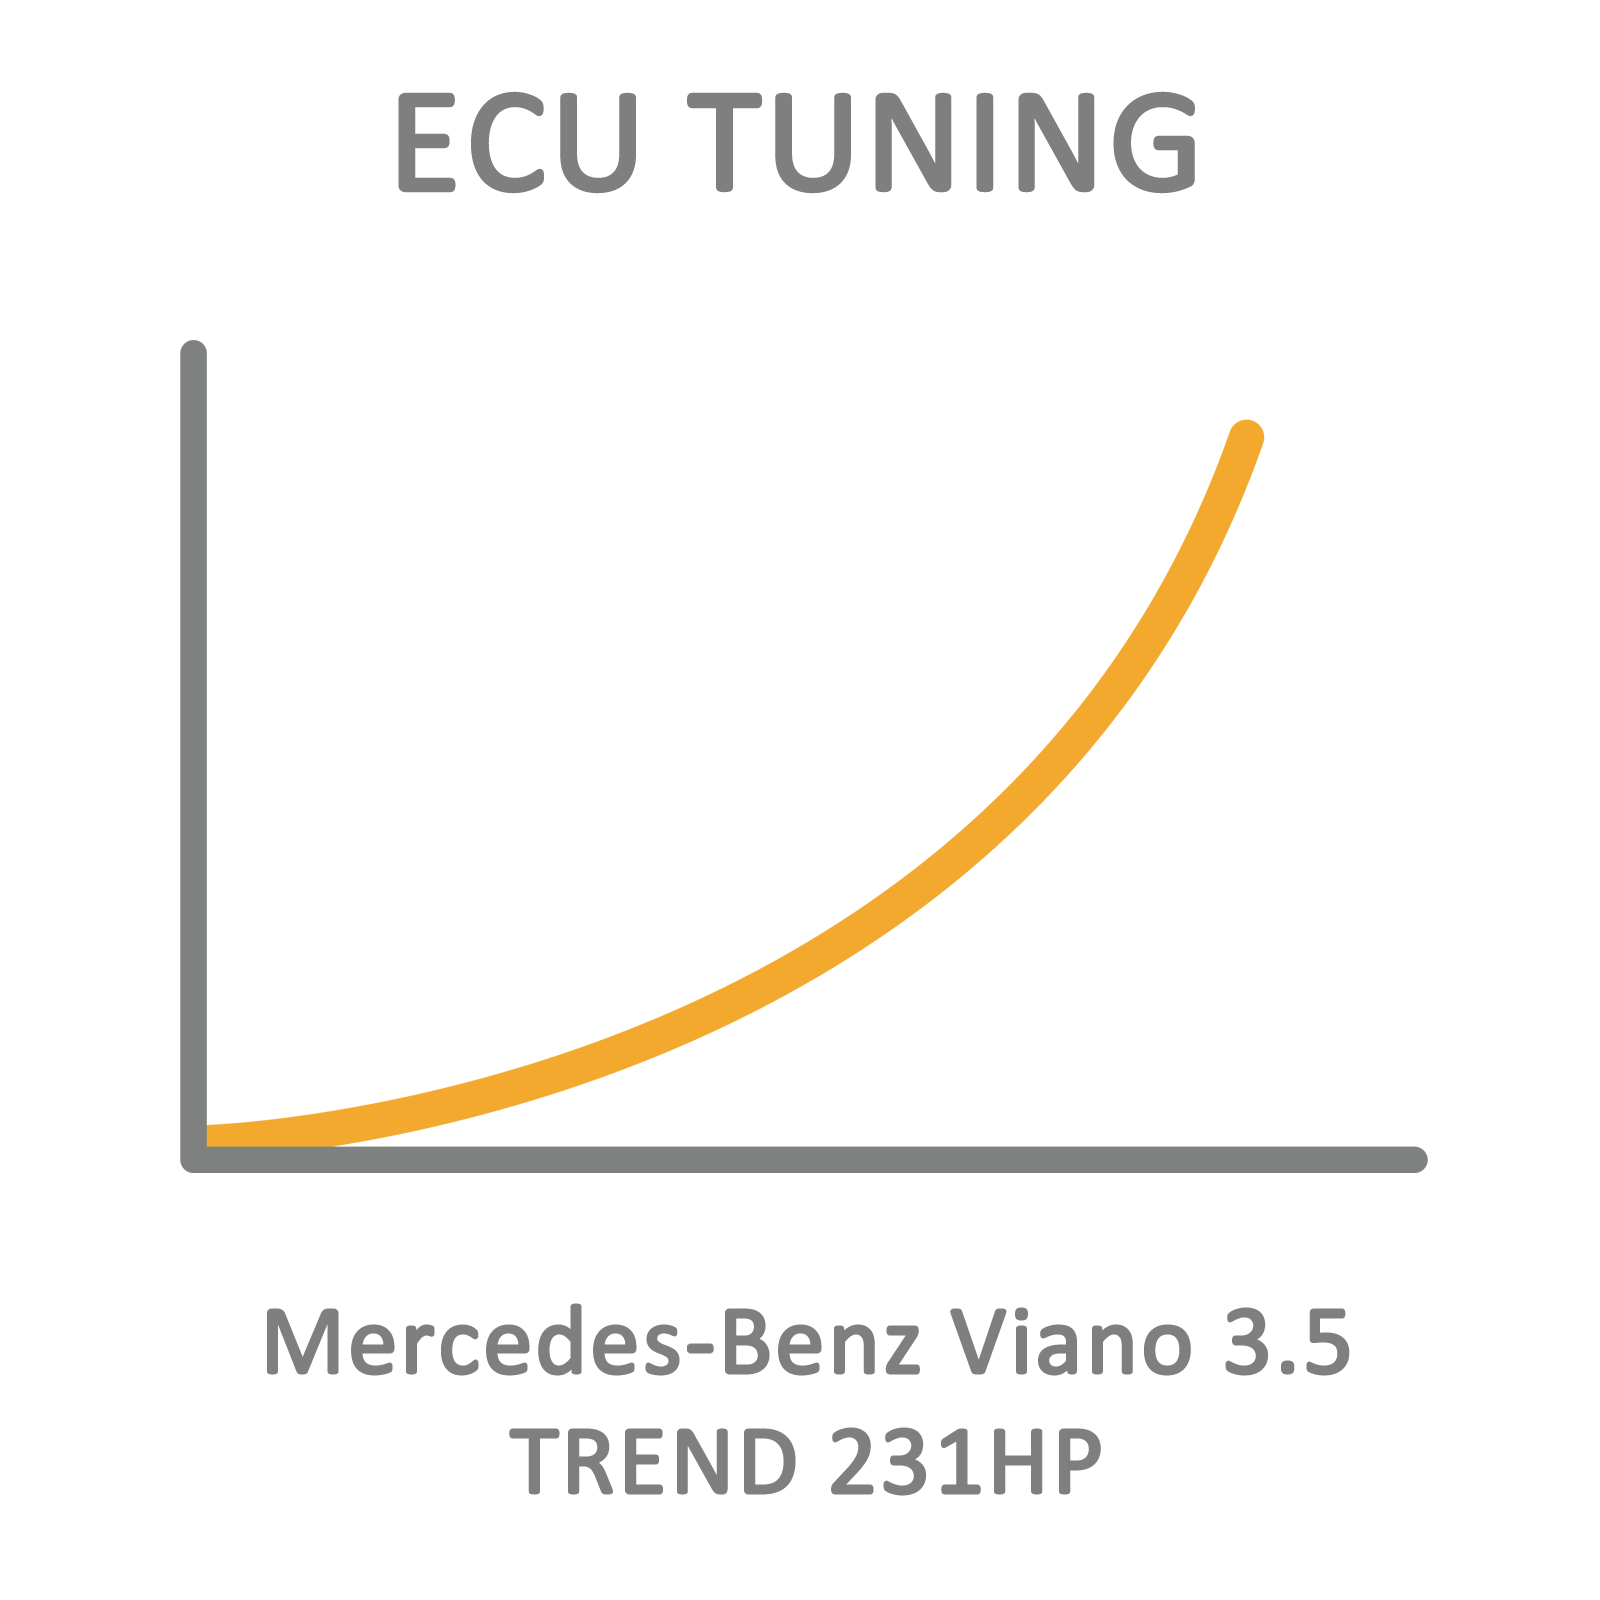 Mercedes-Benz Viano 3.5 TREND 231HP ECU Tuning Remapping